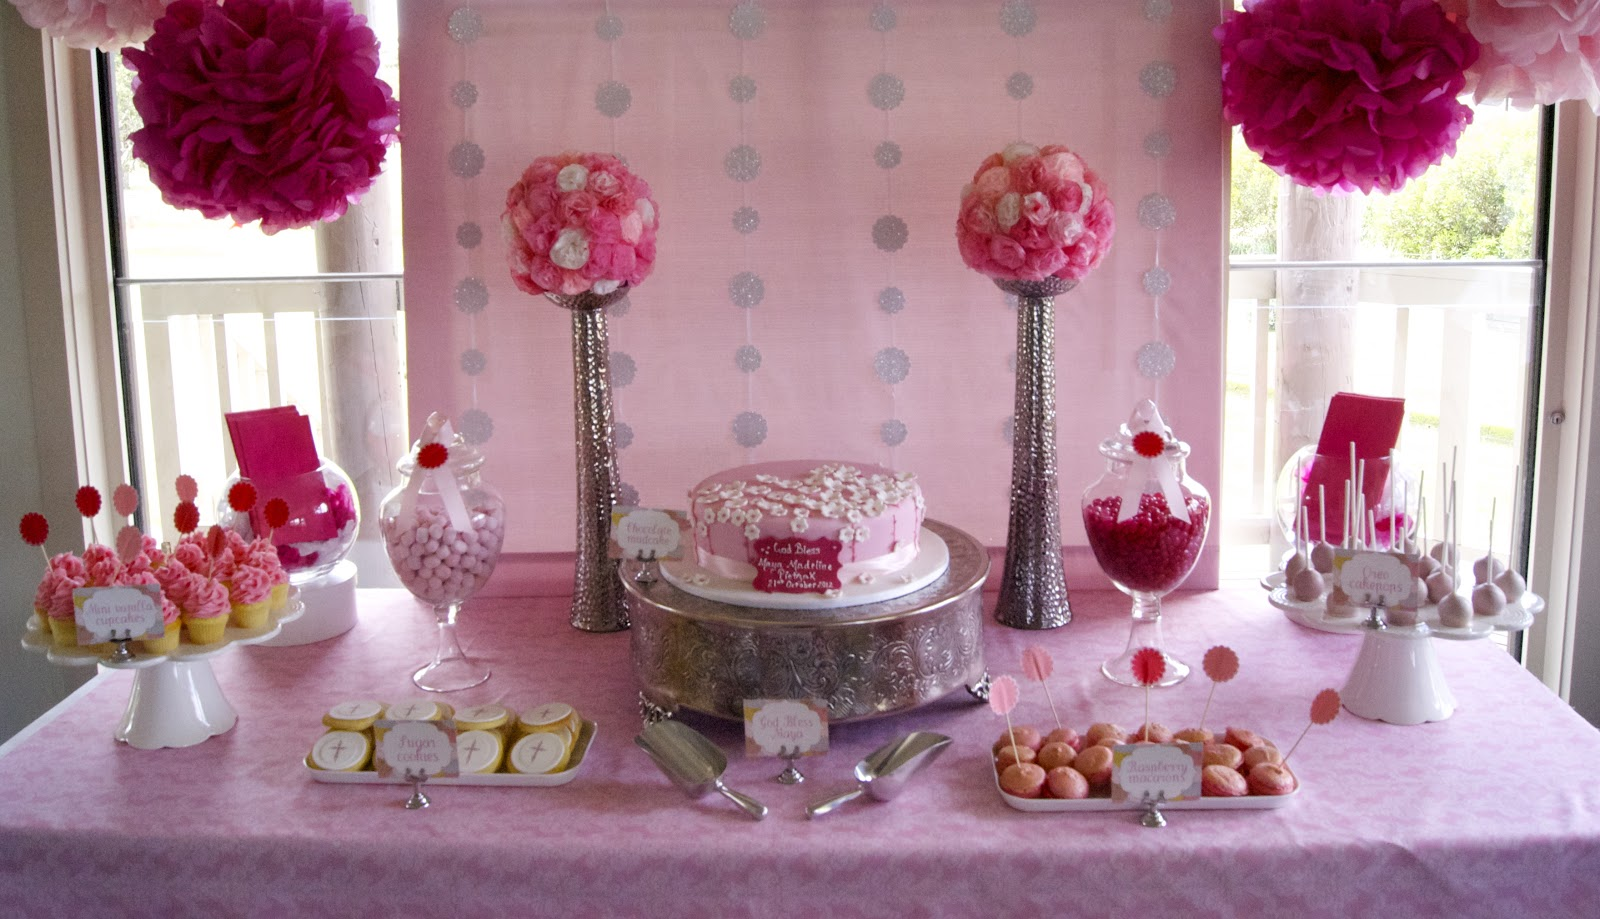 Magnificent Christening Table Decoration Ideas 1600 X 919 251 Kb Jpeg